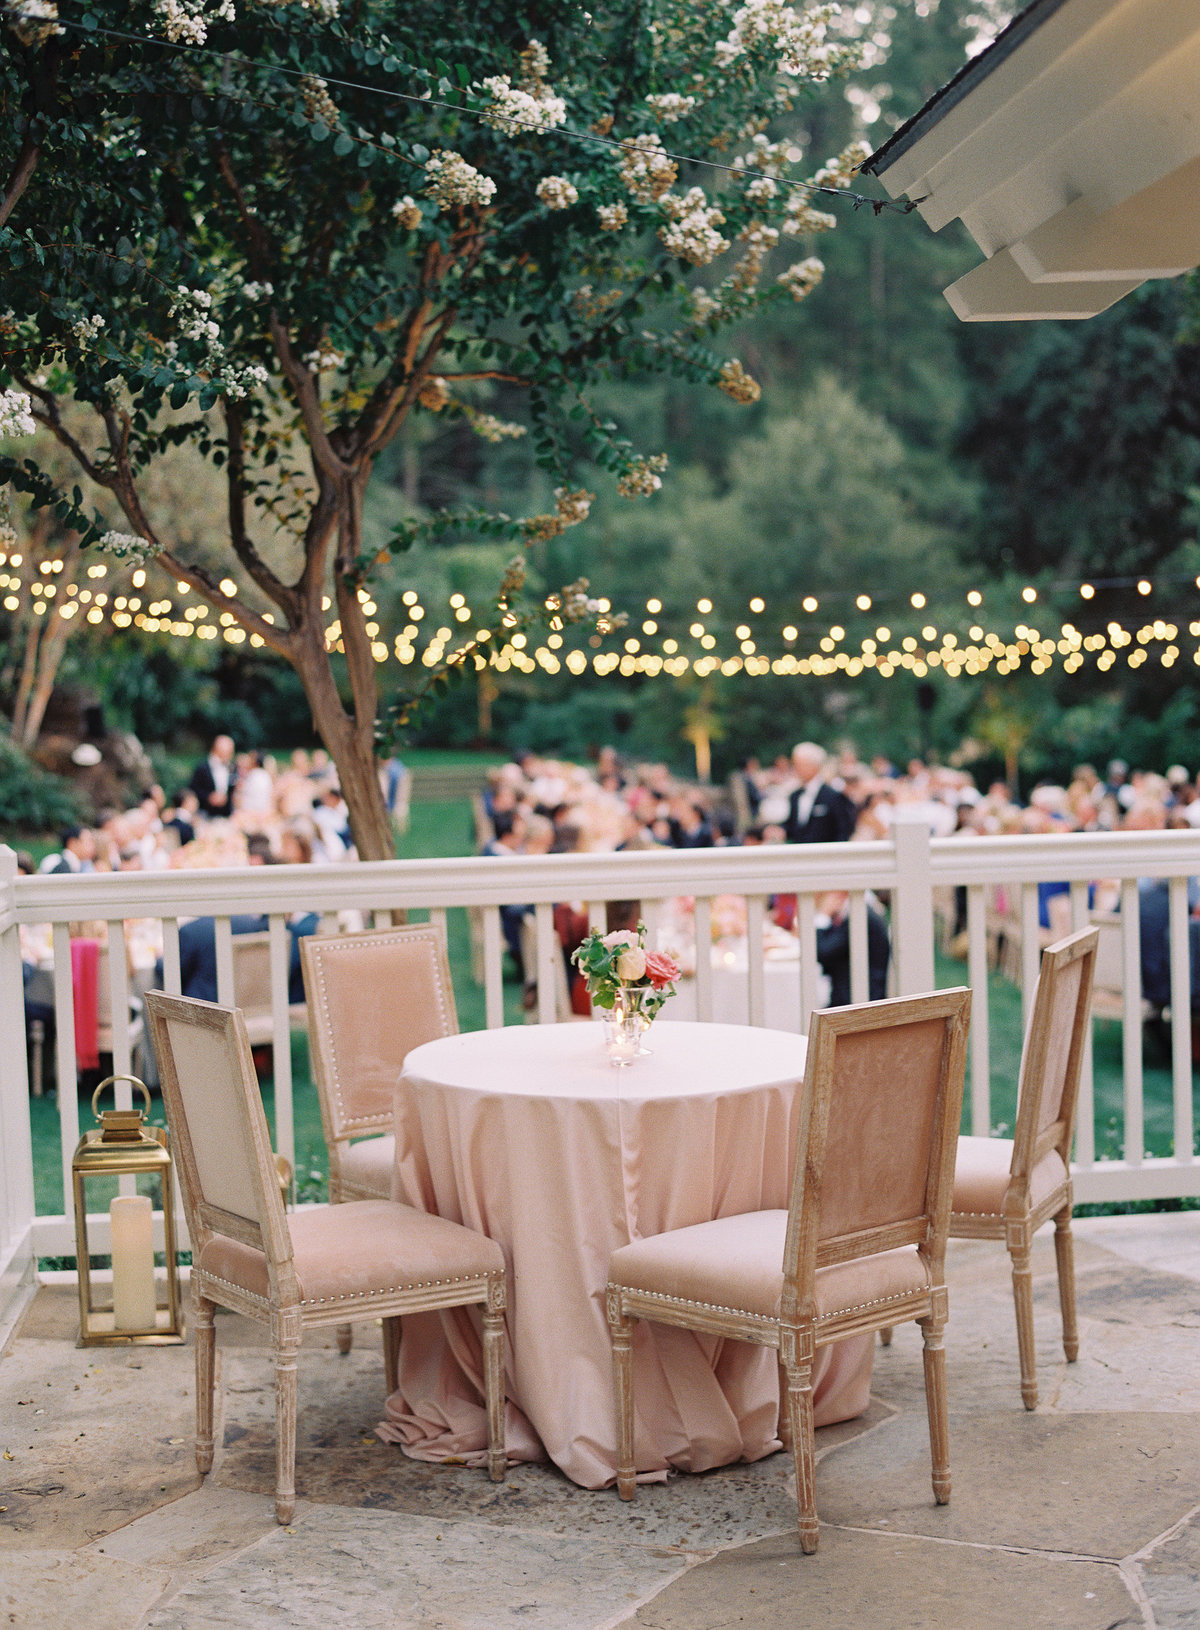 Wedding by Jenny Schneider Events at Meadowood luxury resort in Saint Helena in Napa Valley, California. Photo by Eric Kelley Photography.